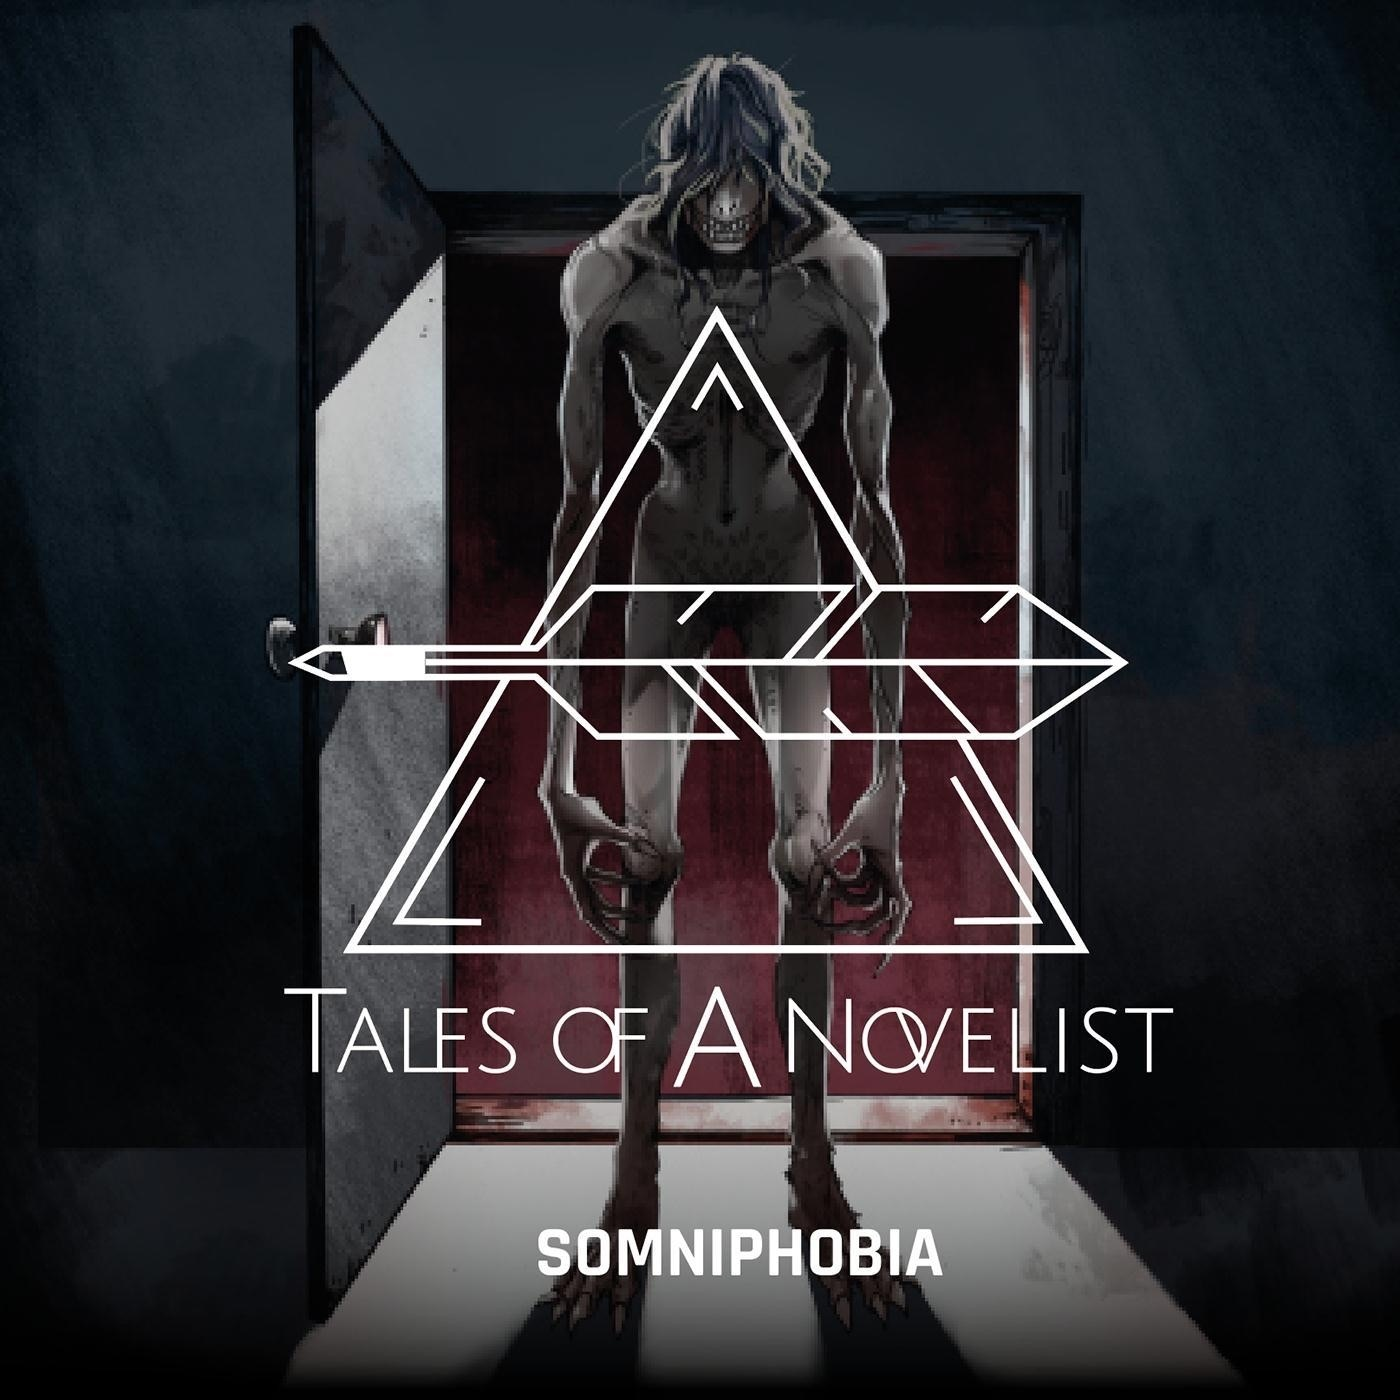 Tales of a Novelist - Somniphobia (2018)